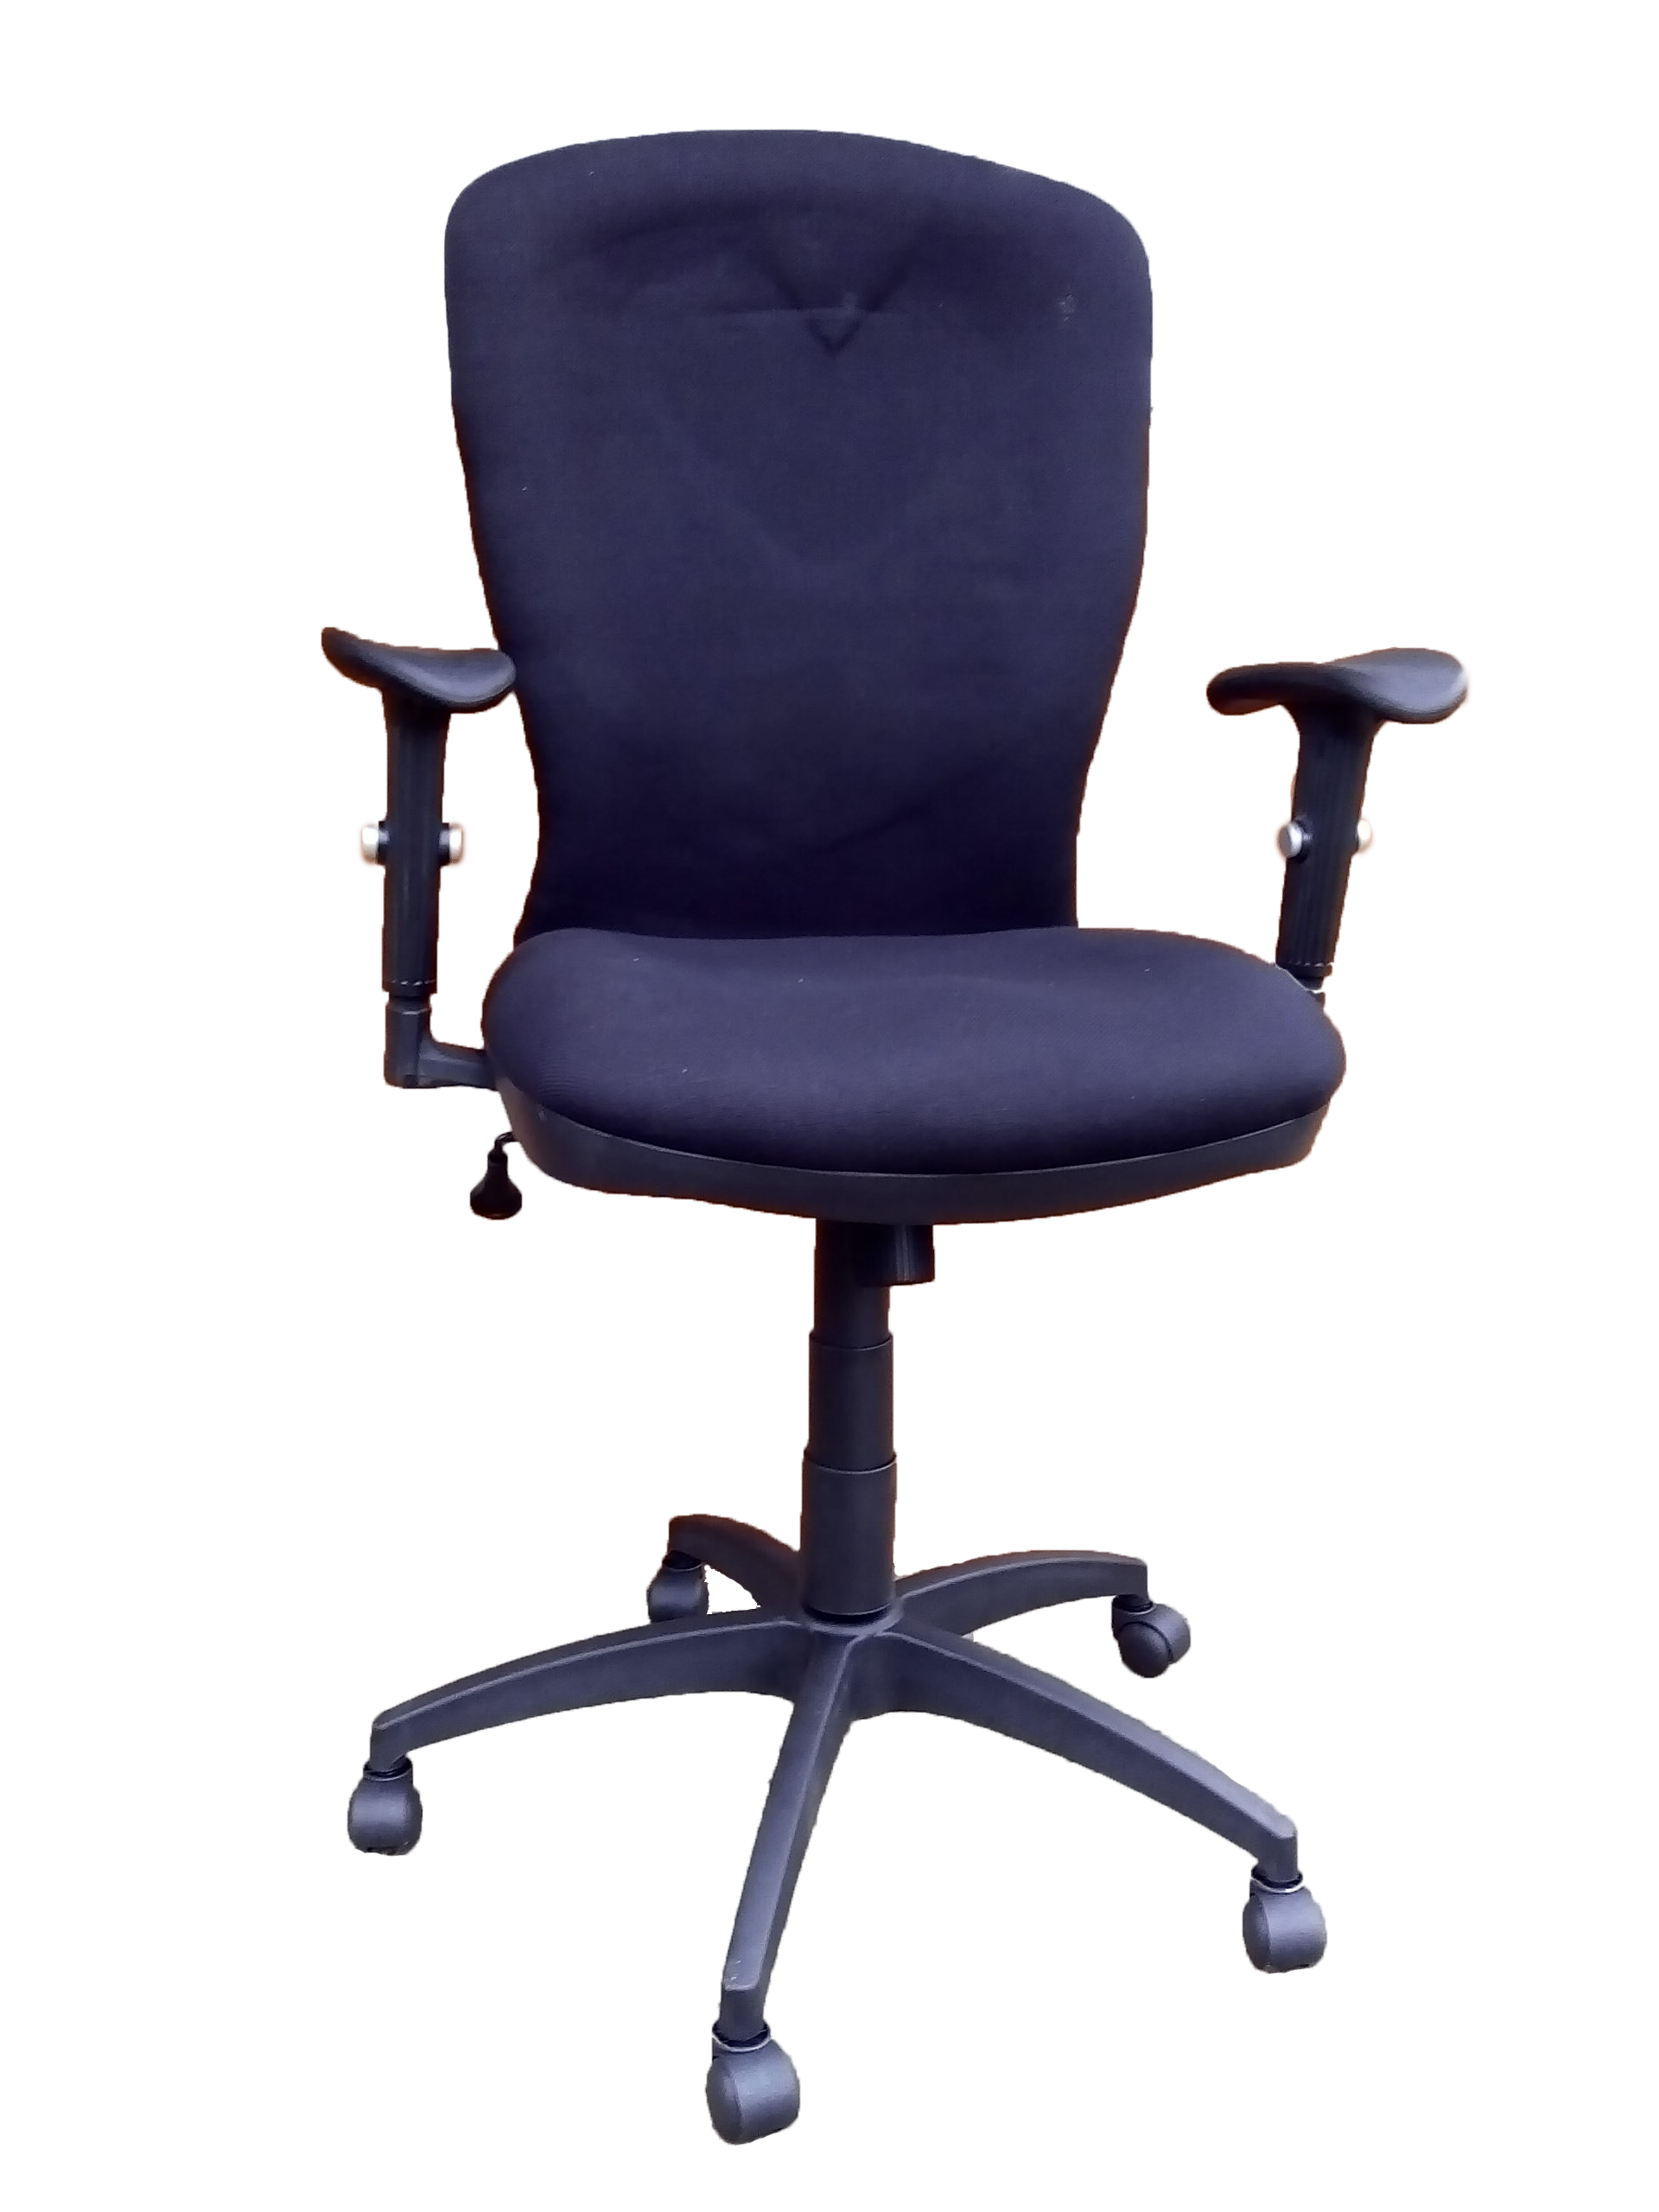 A10021h Black Computer Office Chair Front